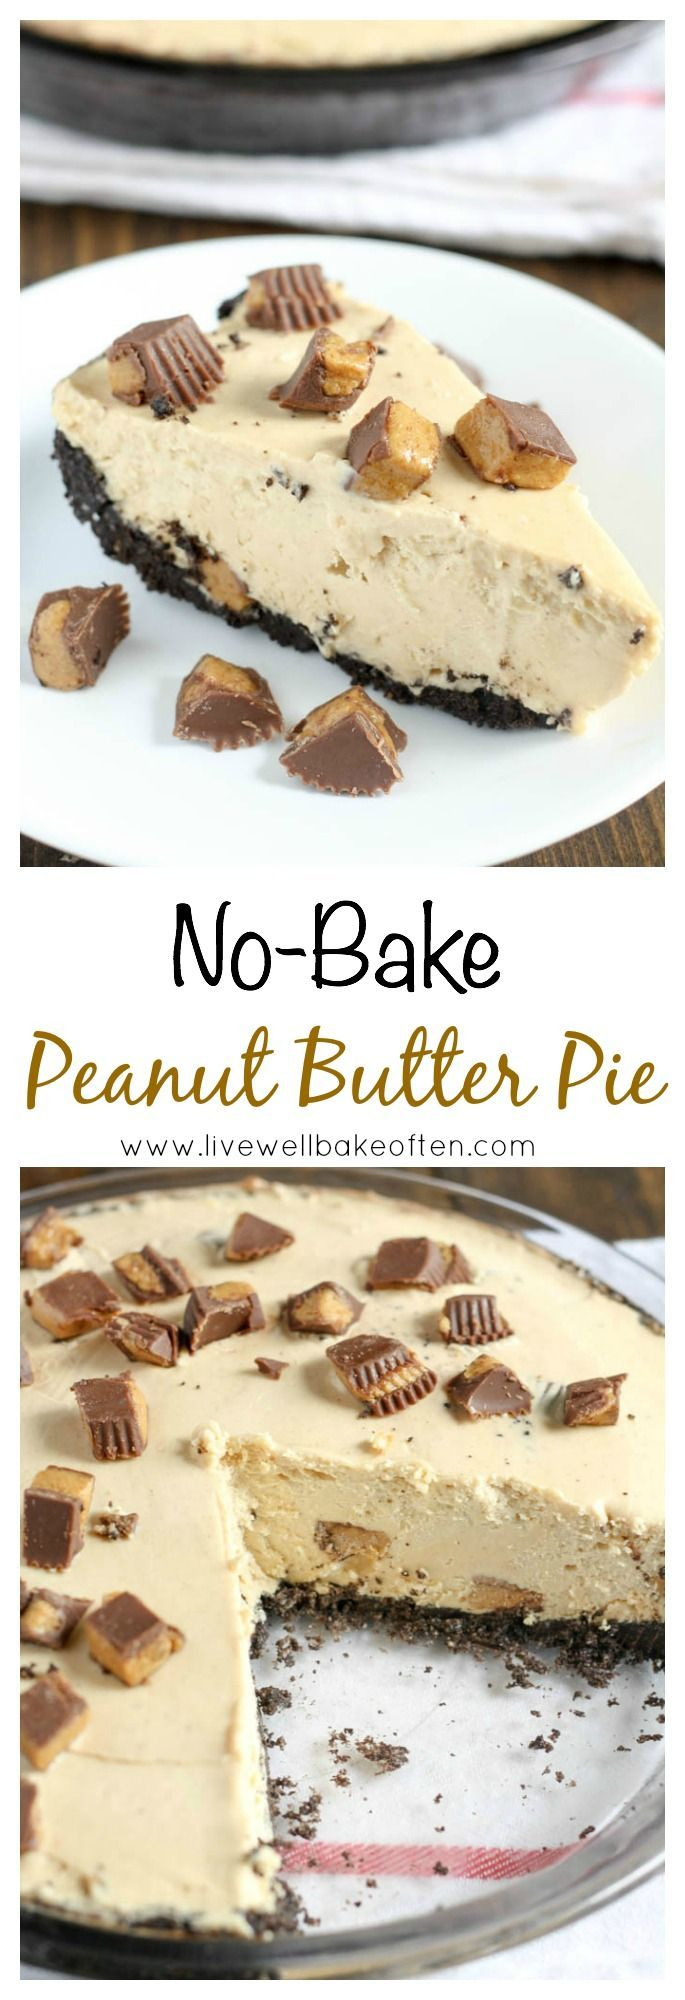 An easy no-bake peanut butter pie with a homemade Oreo crust!